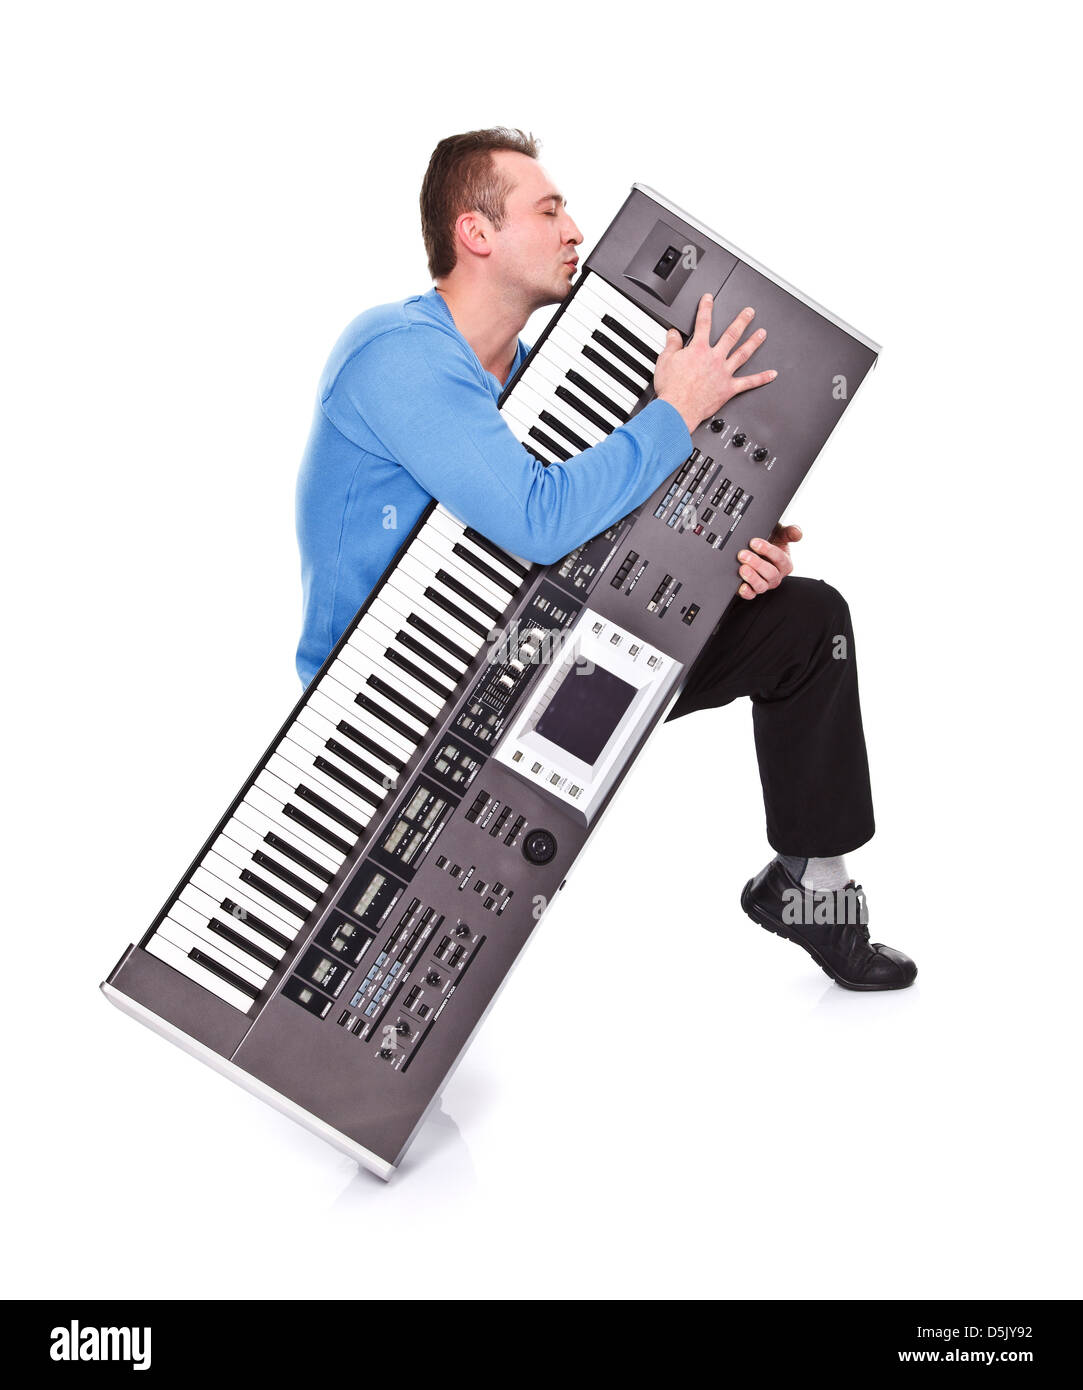 Enthusiastic musician kissing his favorite synthesizer - isolated - Stock Image